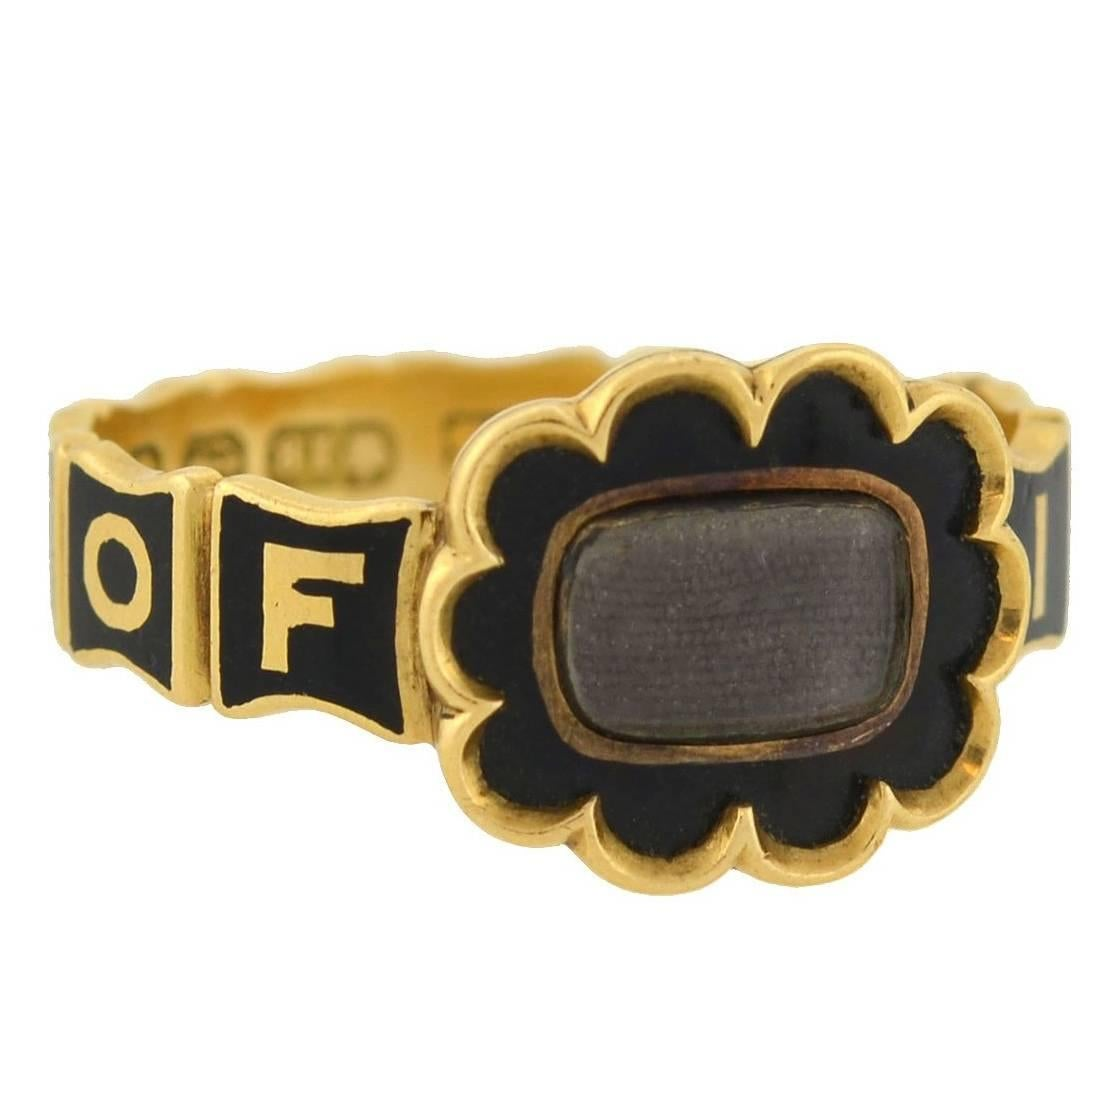 Early Victorian English Mourning Ring with Enameling and Woven Hair